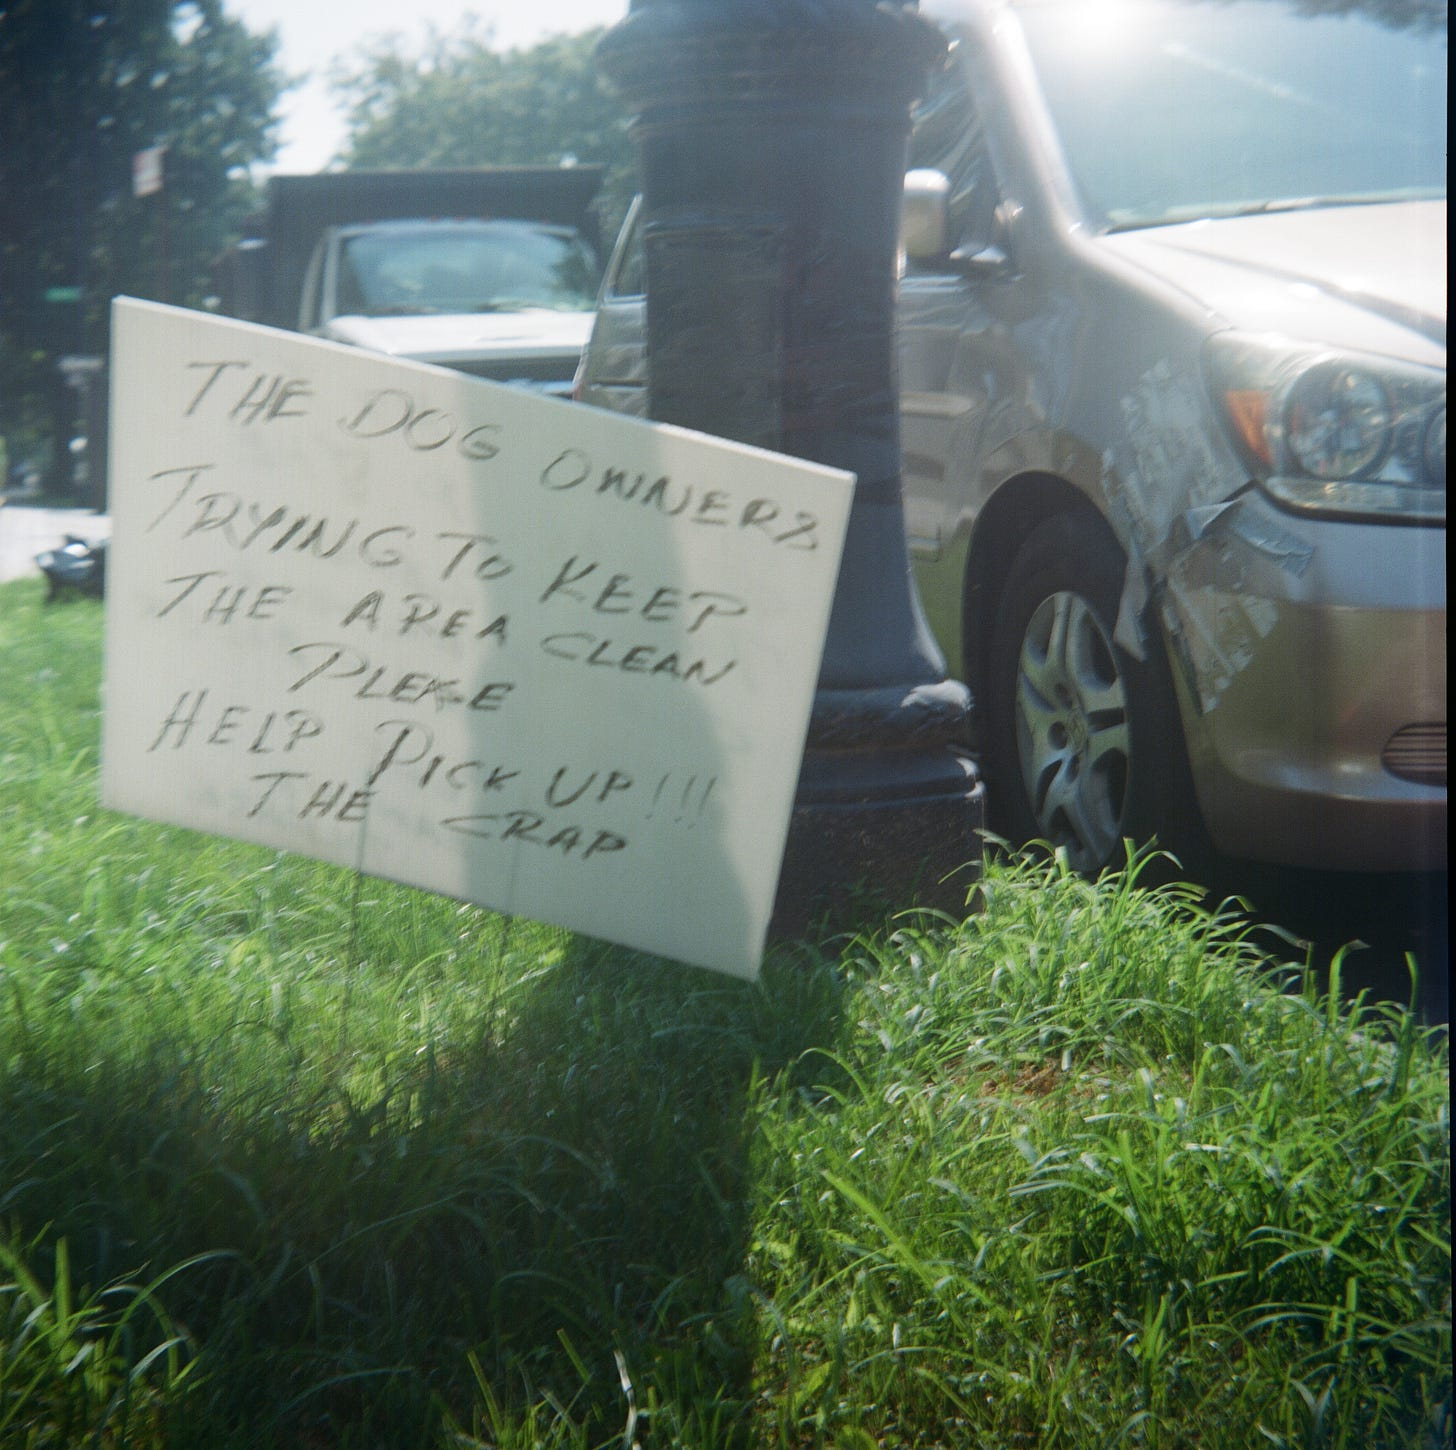 Sign asking dog owners to clean up after their dogs on grassy area in Flatbush